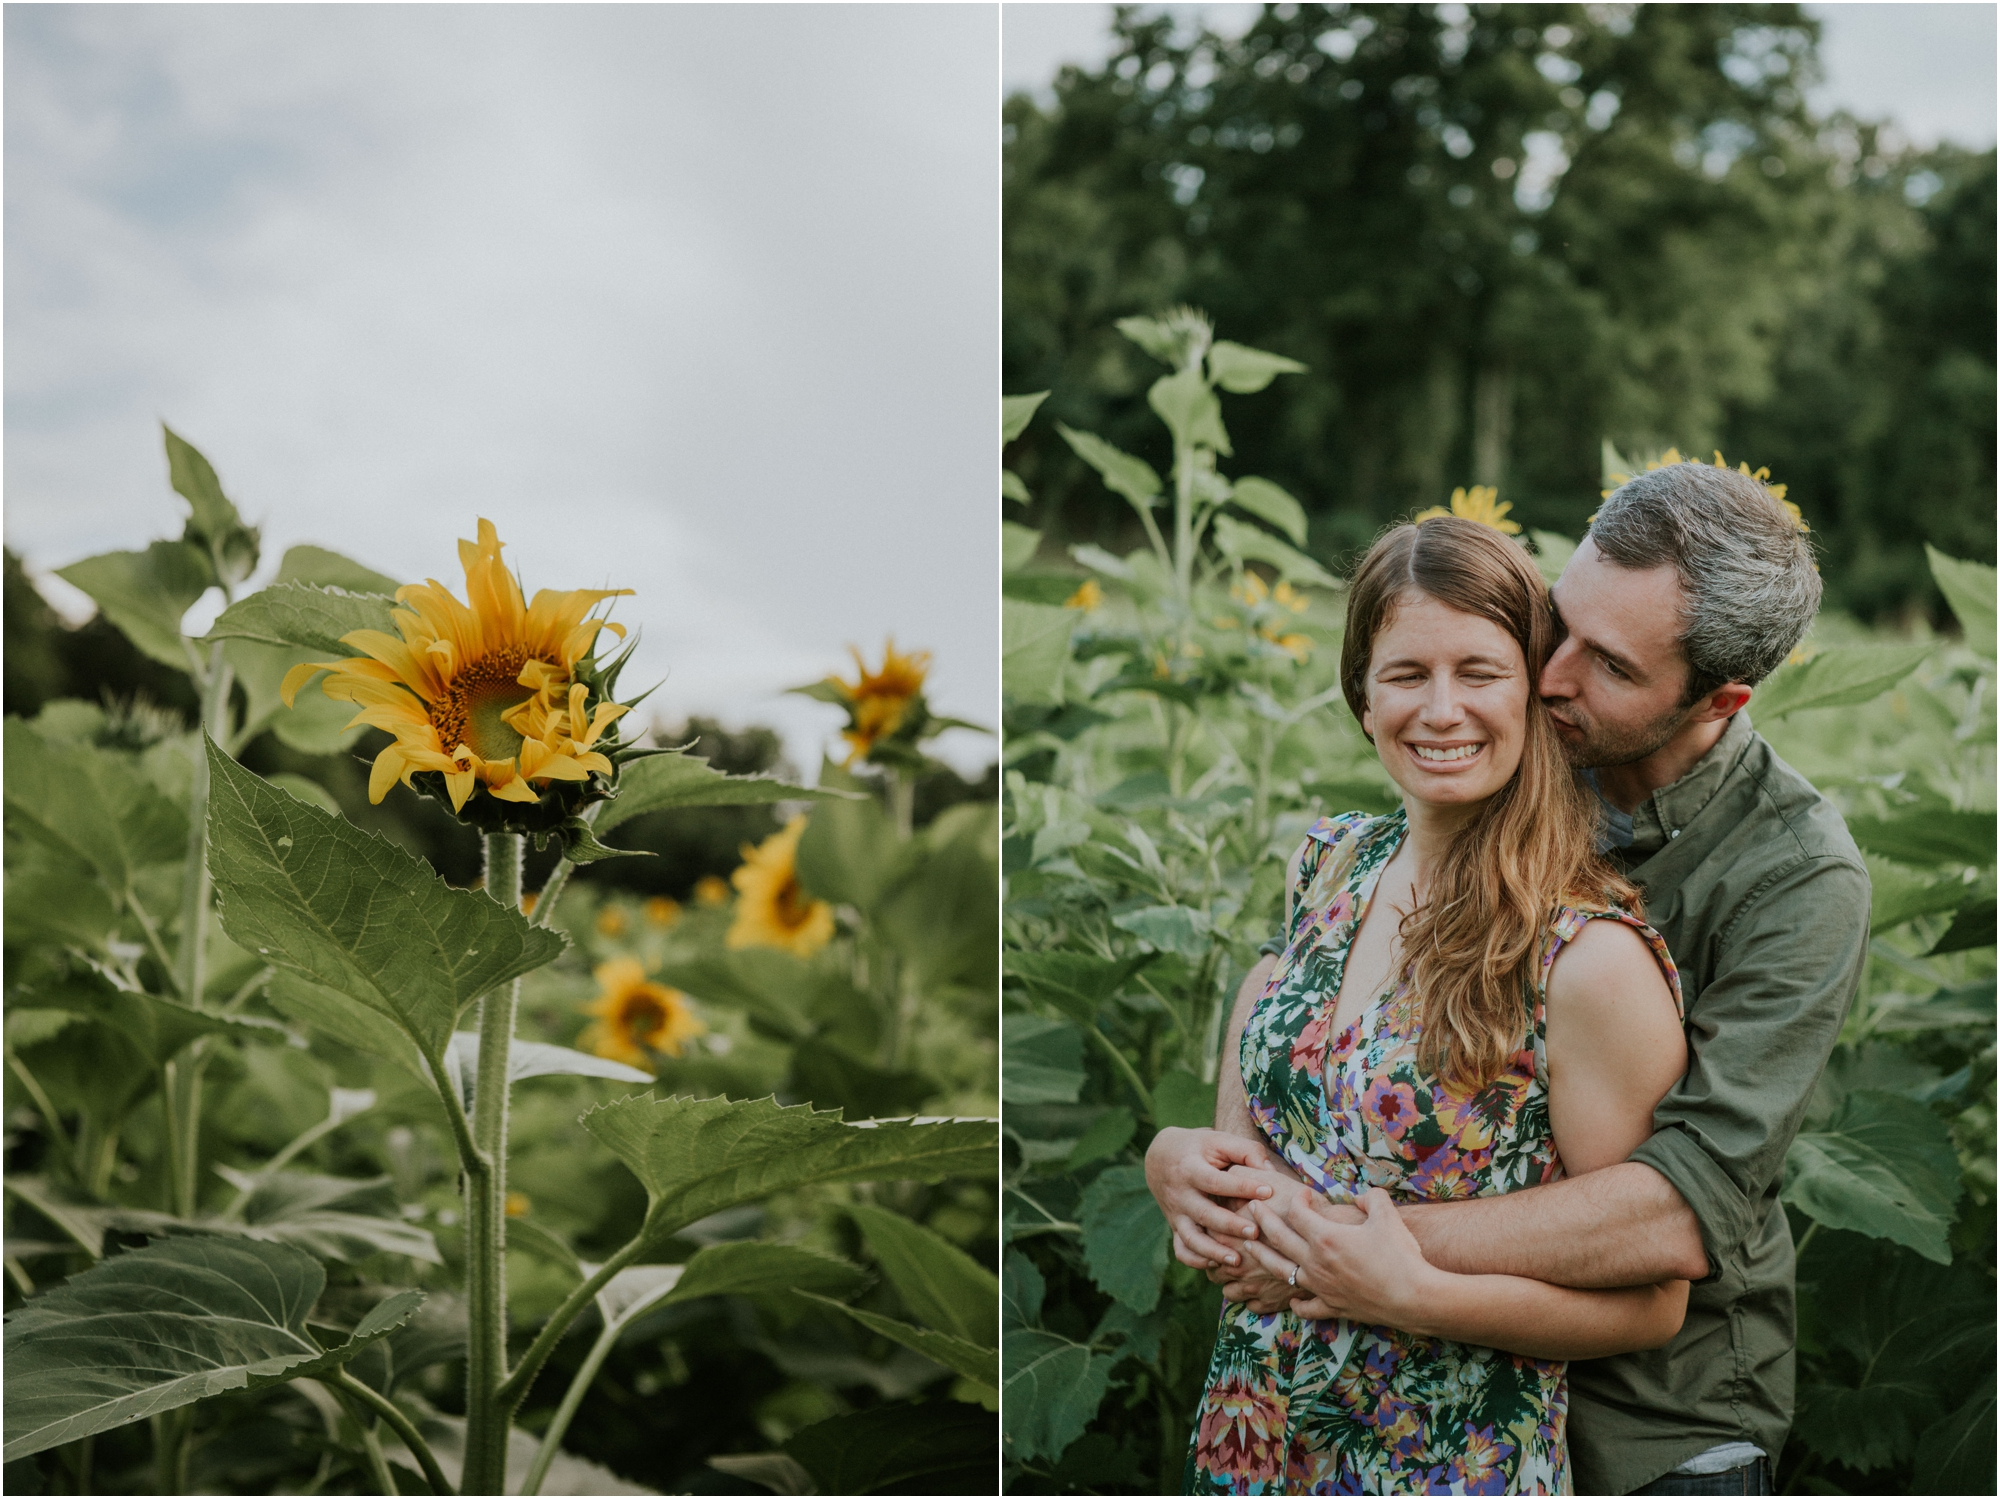 meads-quarry-ijams-nature-center-knoxville-tennessee-engagement-session-summer-northeast-tn-adventurous-outdoors-lake-katy-sergent_0037.jpg